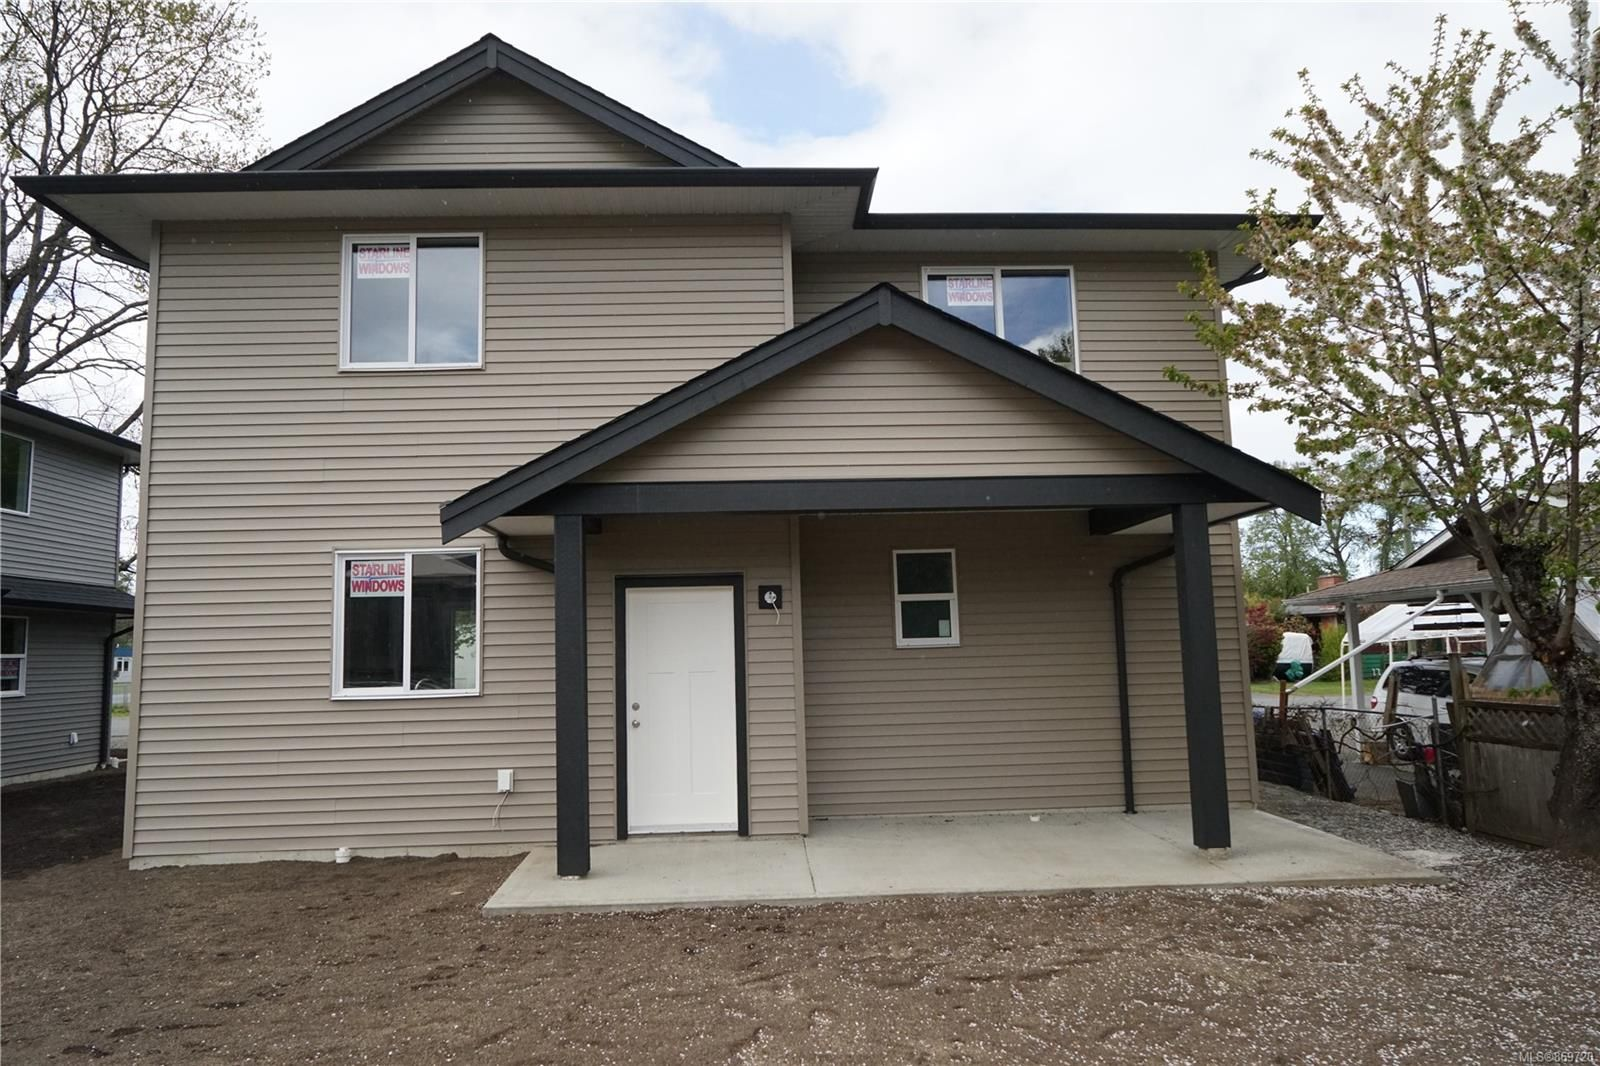 Photo 9: Photos: 770 Bruce Ave in : Na South Nanaimo House for sale (Nanaimo)  : MLS®# 869720